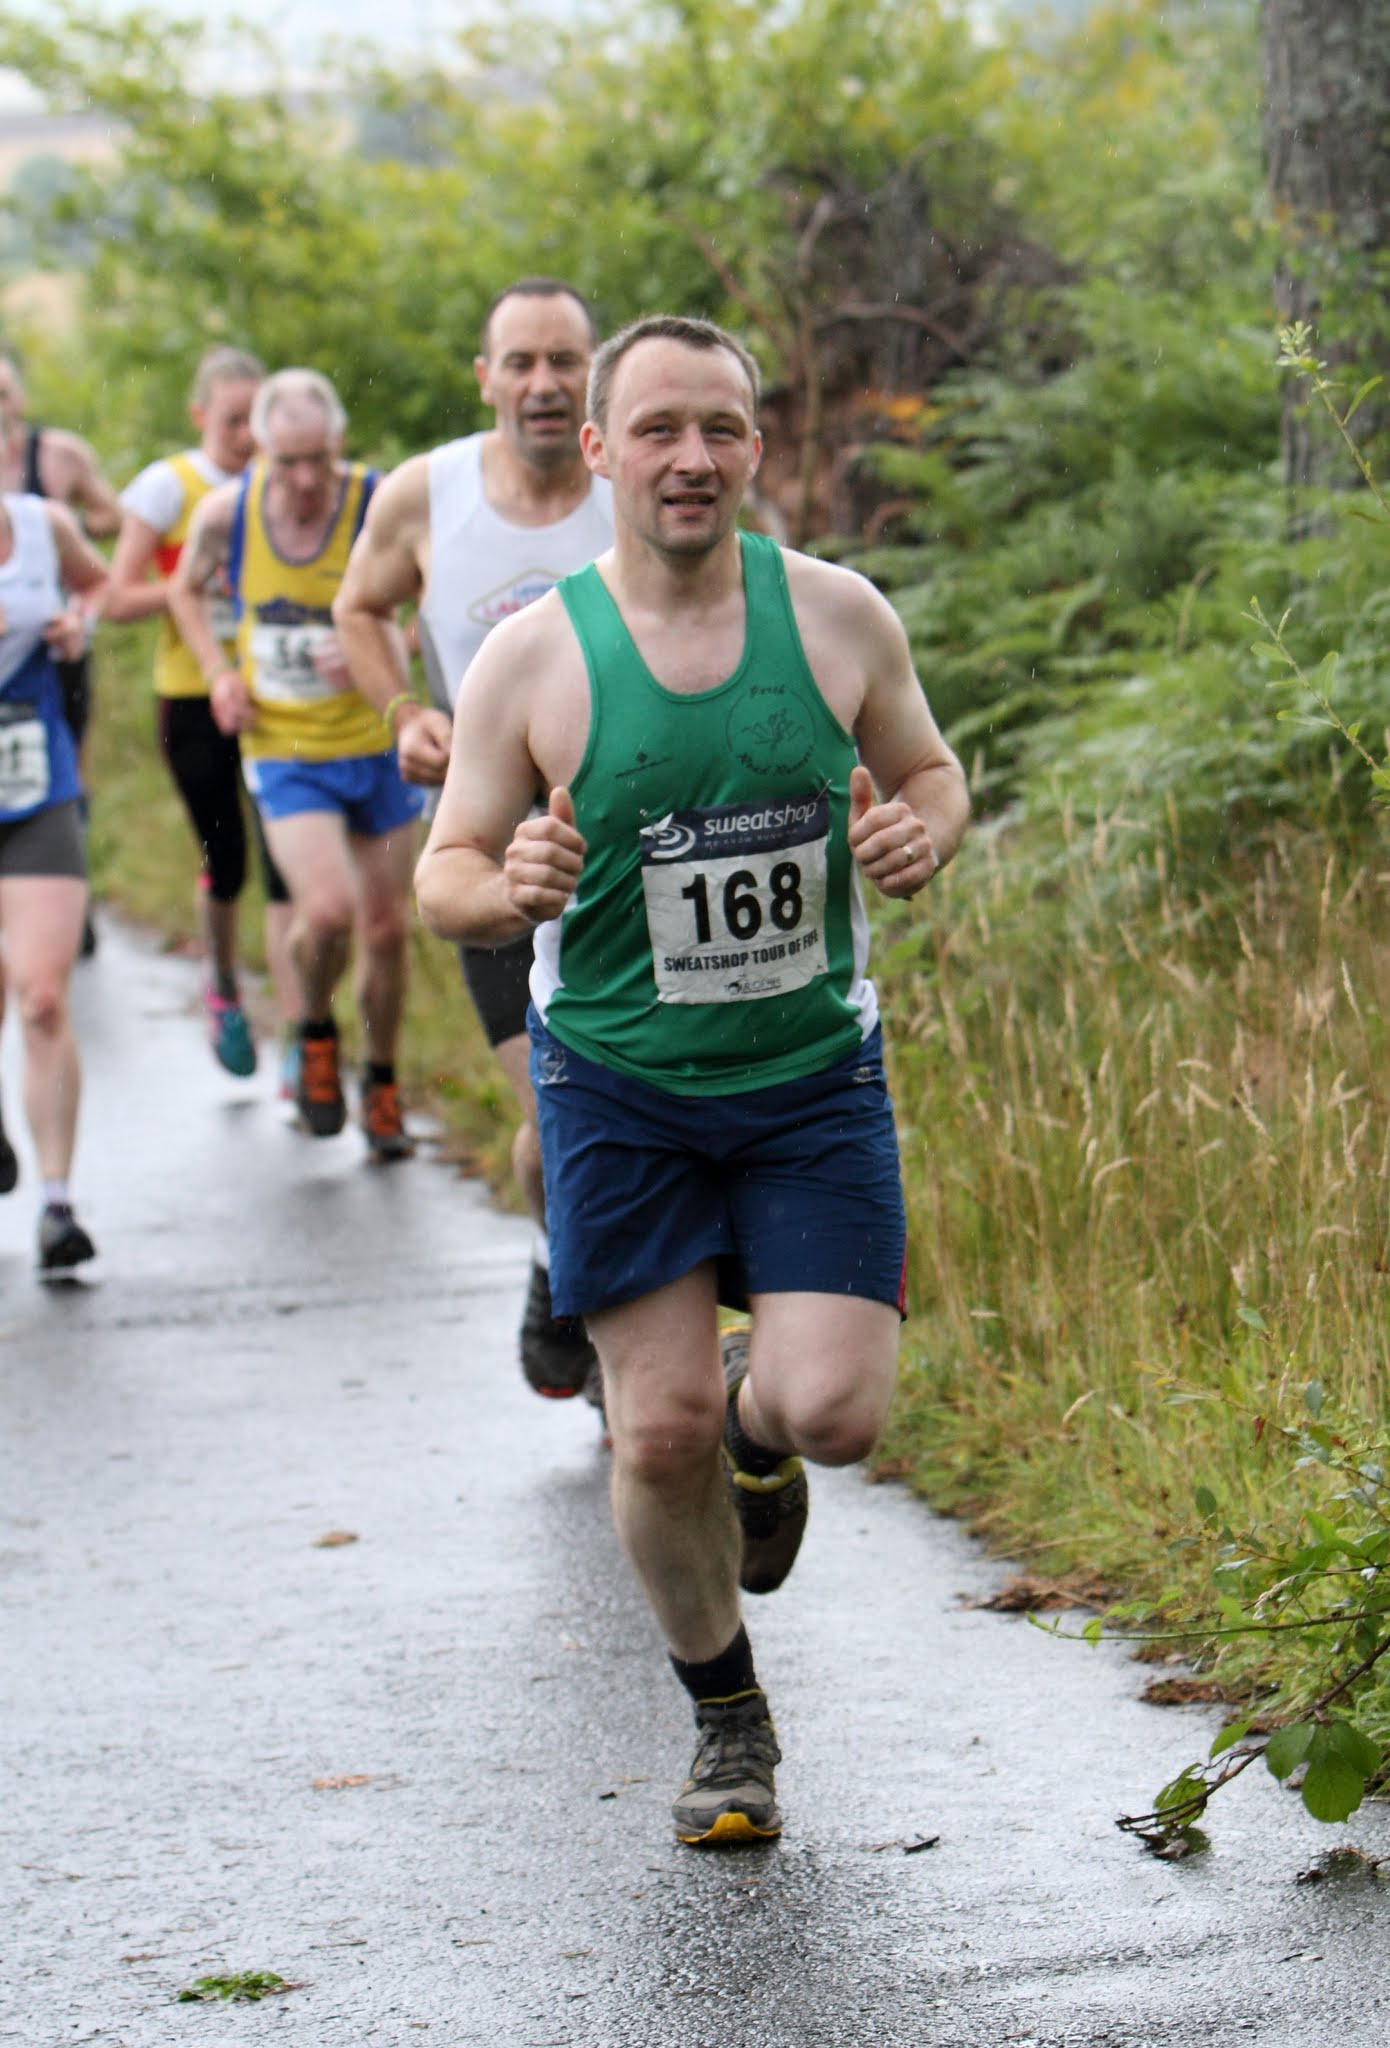 Grant Strachan, Strathmiglo, TOF 100814